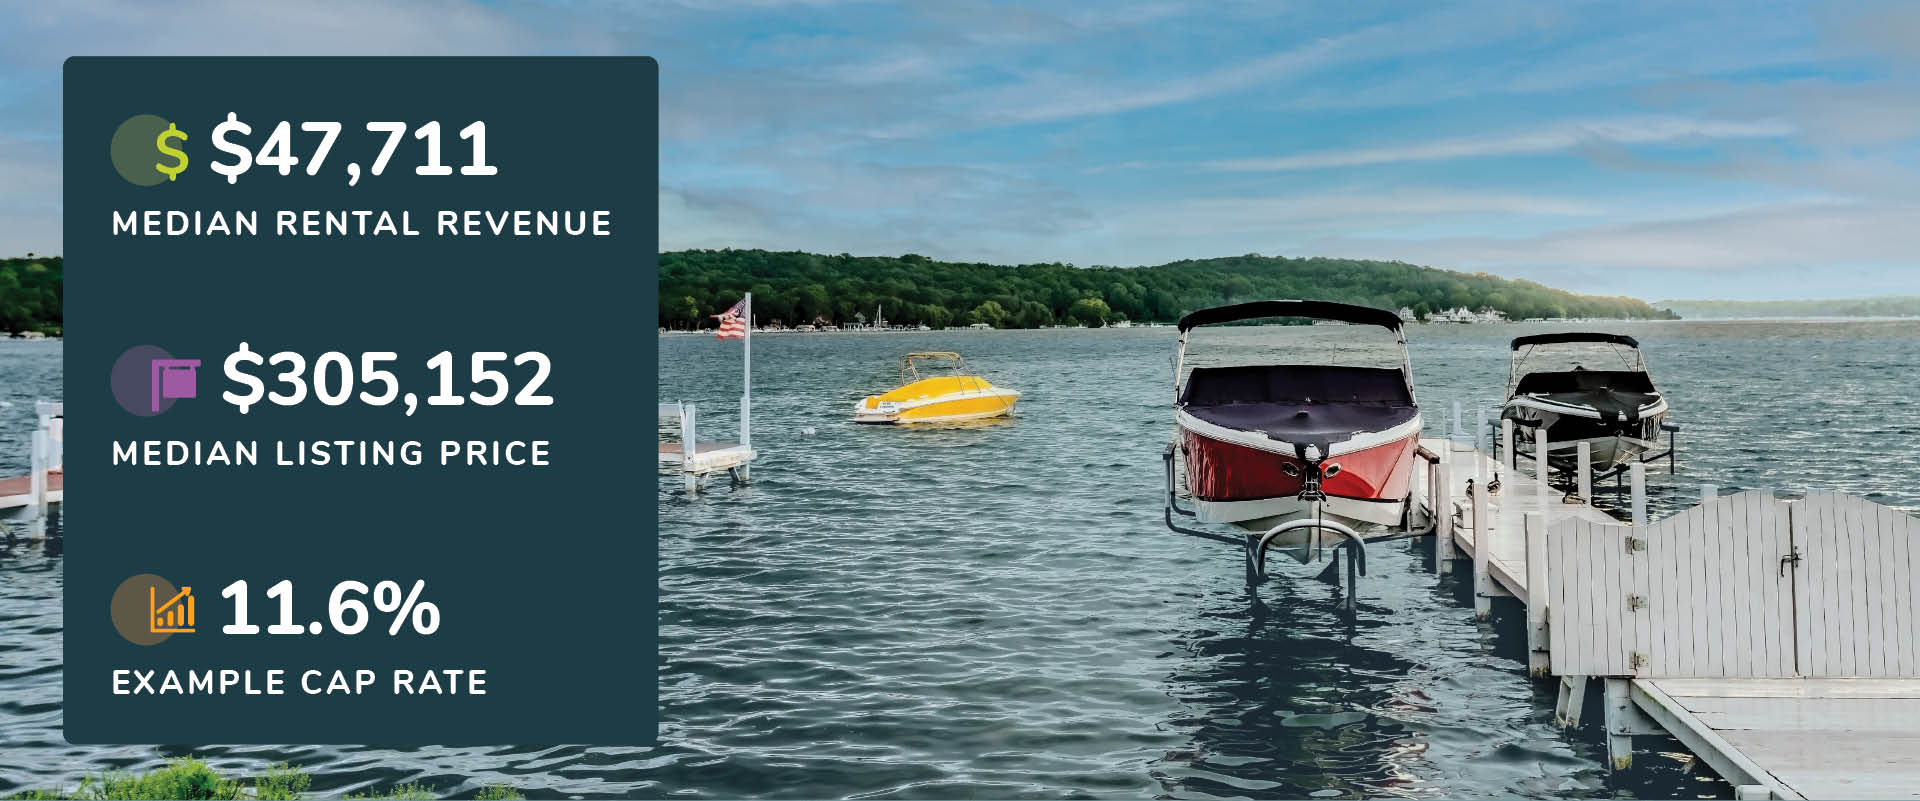 Graphic showing Lake Geneva, Wisconsin rental revenue, listing price, and cap rate with a picture of boats at the dock